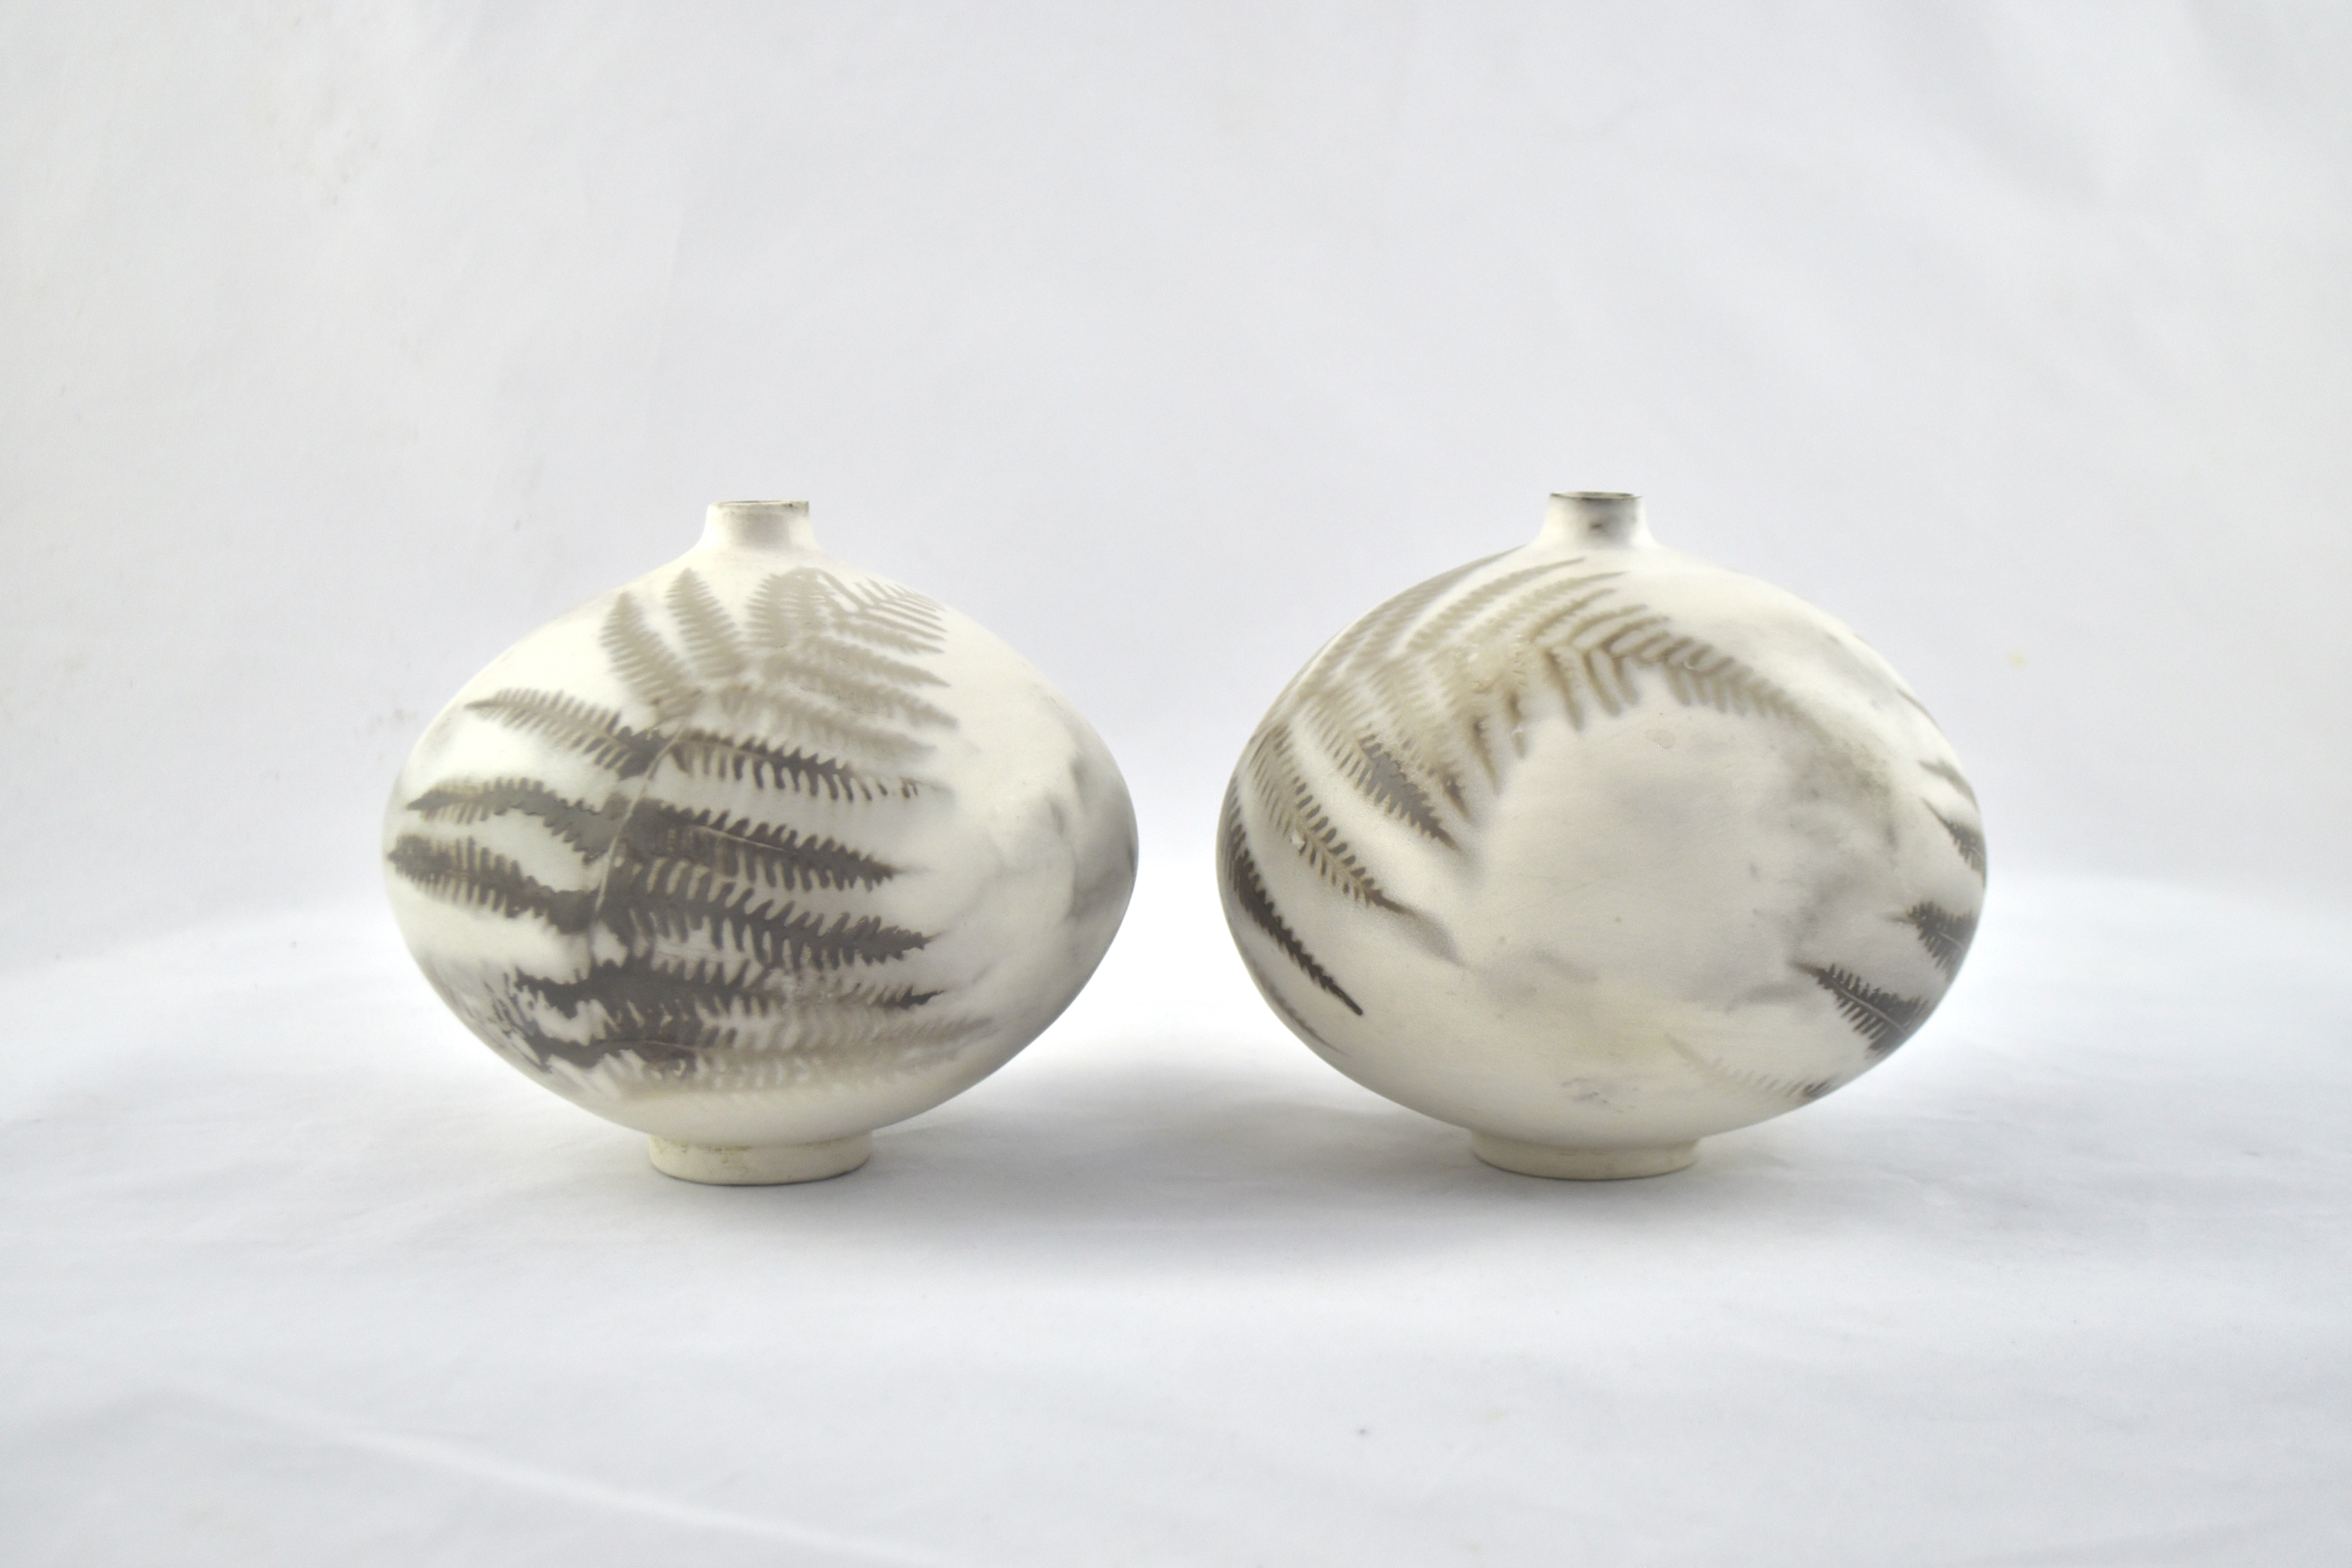 Pair of smokefired fern vessels - 14cm